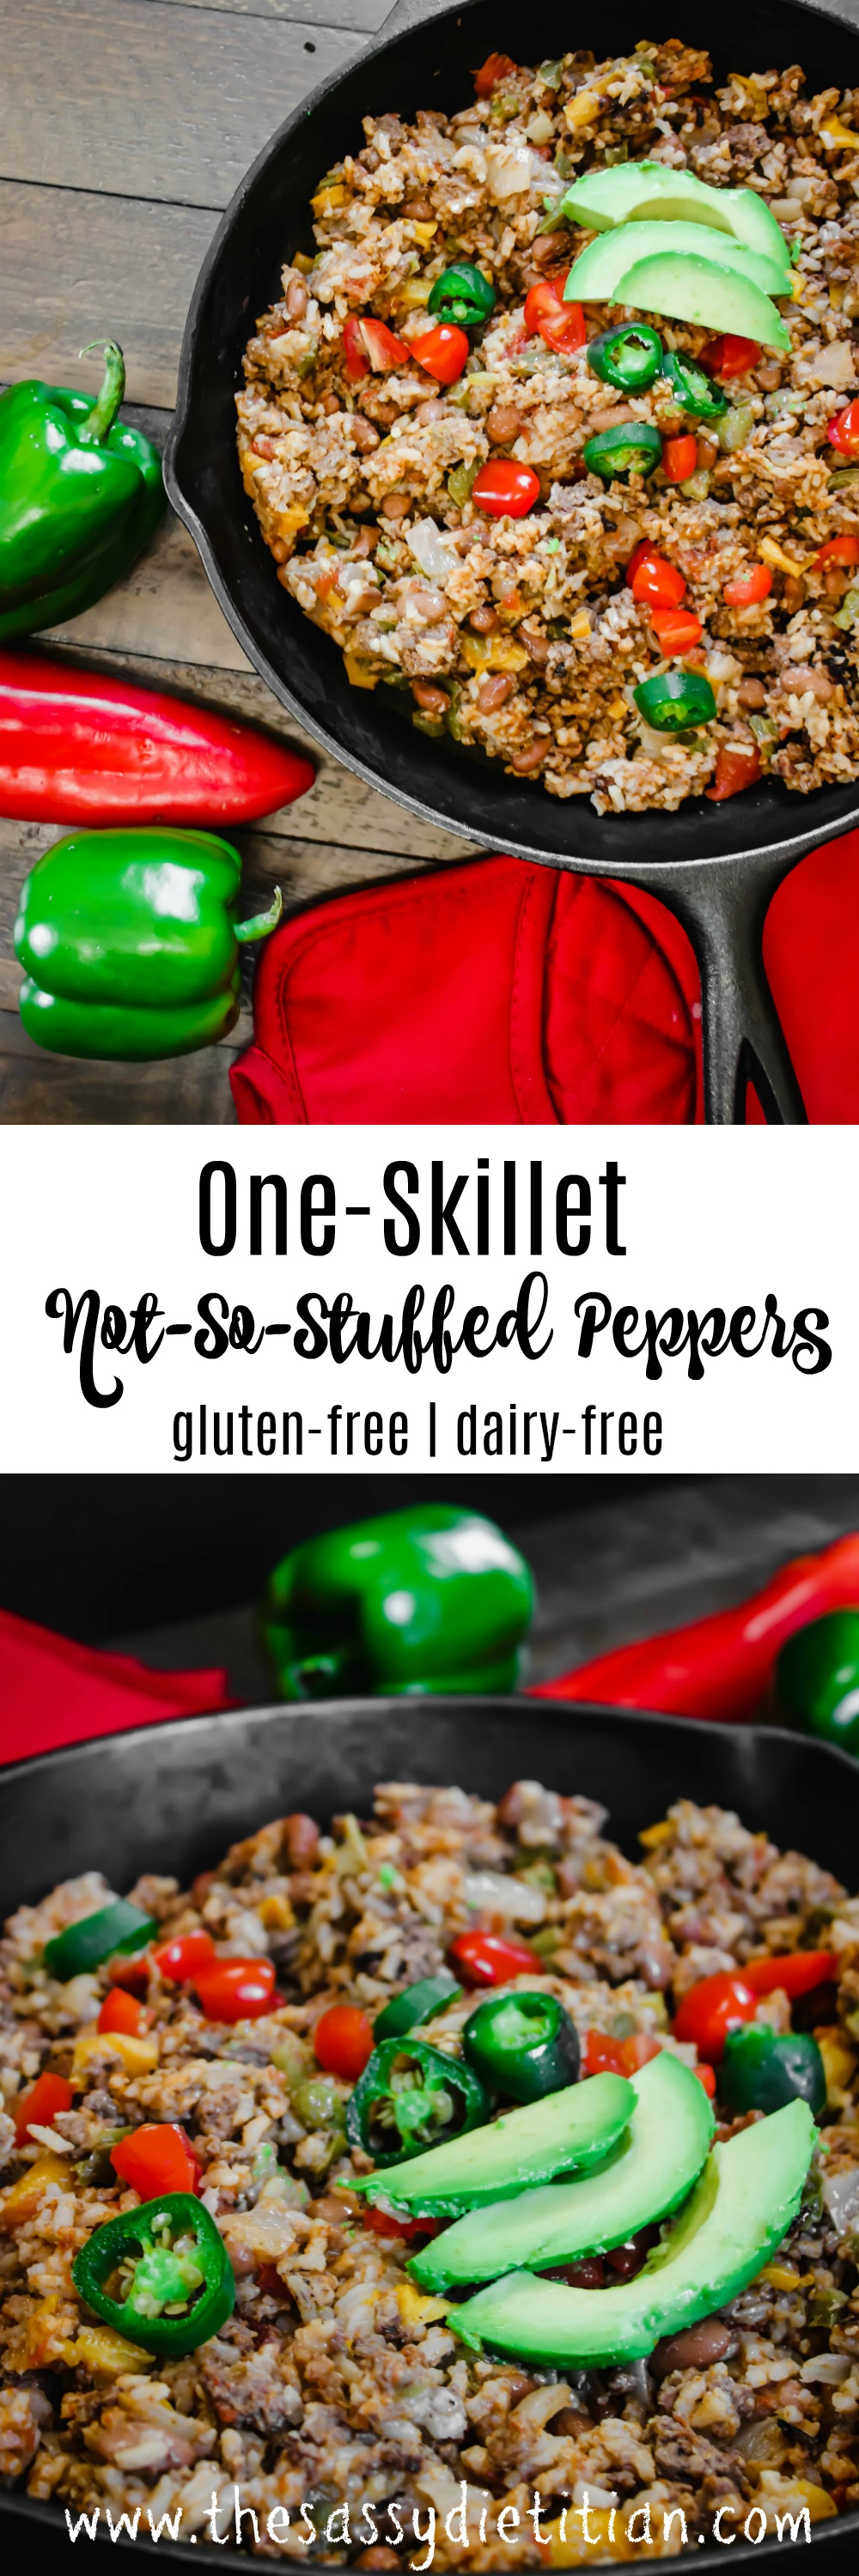 not so stuffed peppers